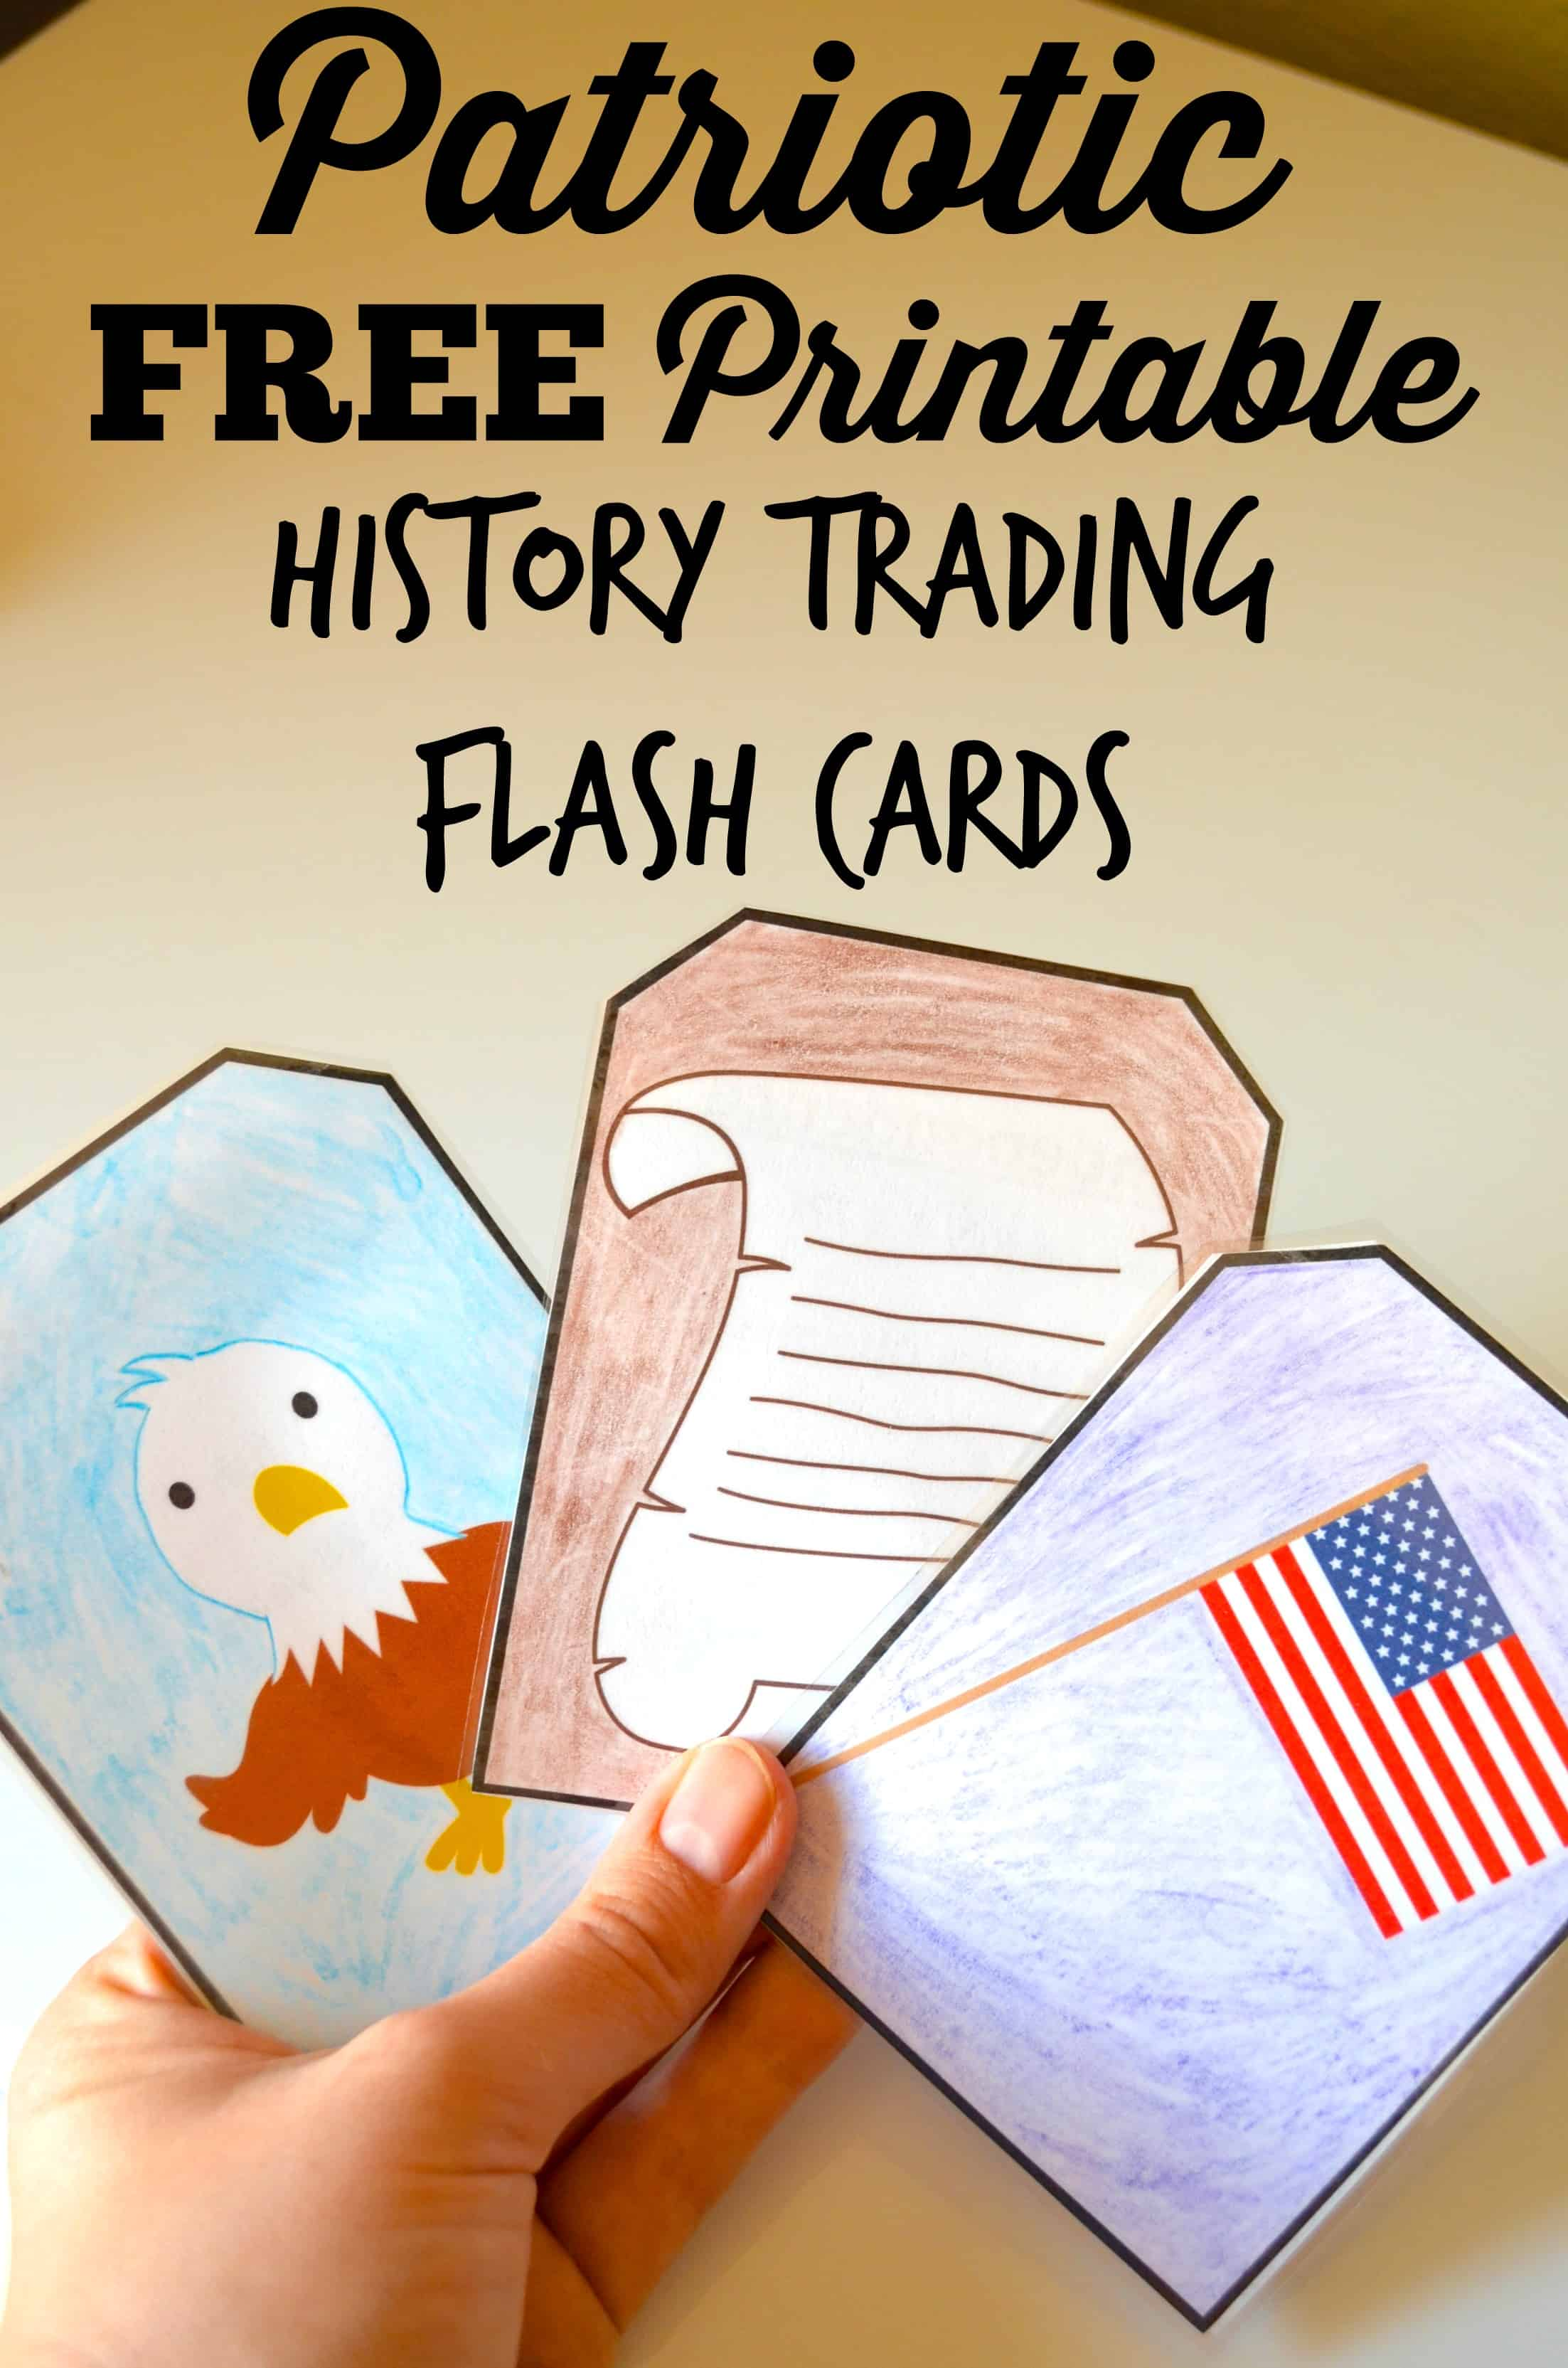 Free Printable Patriotic History Trading Flashcards